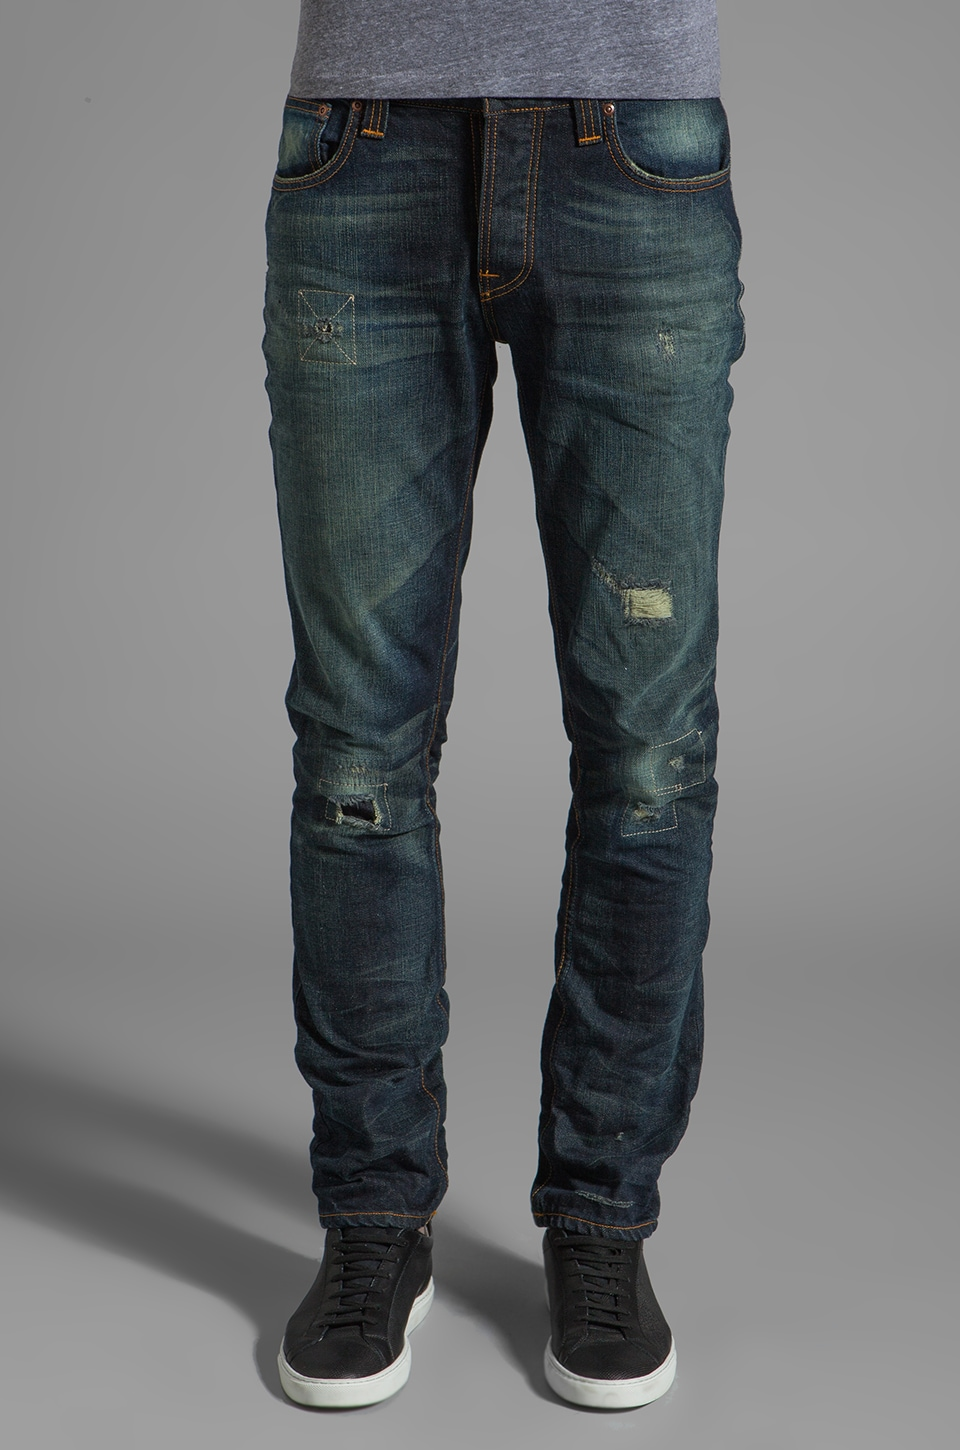 Nudie Jeans Grim Tim in Organic Bob Replica